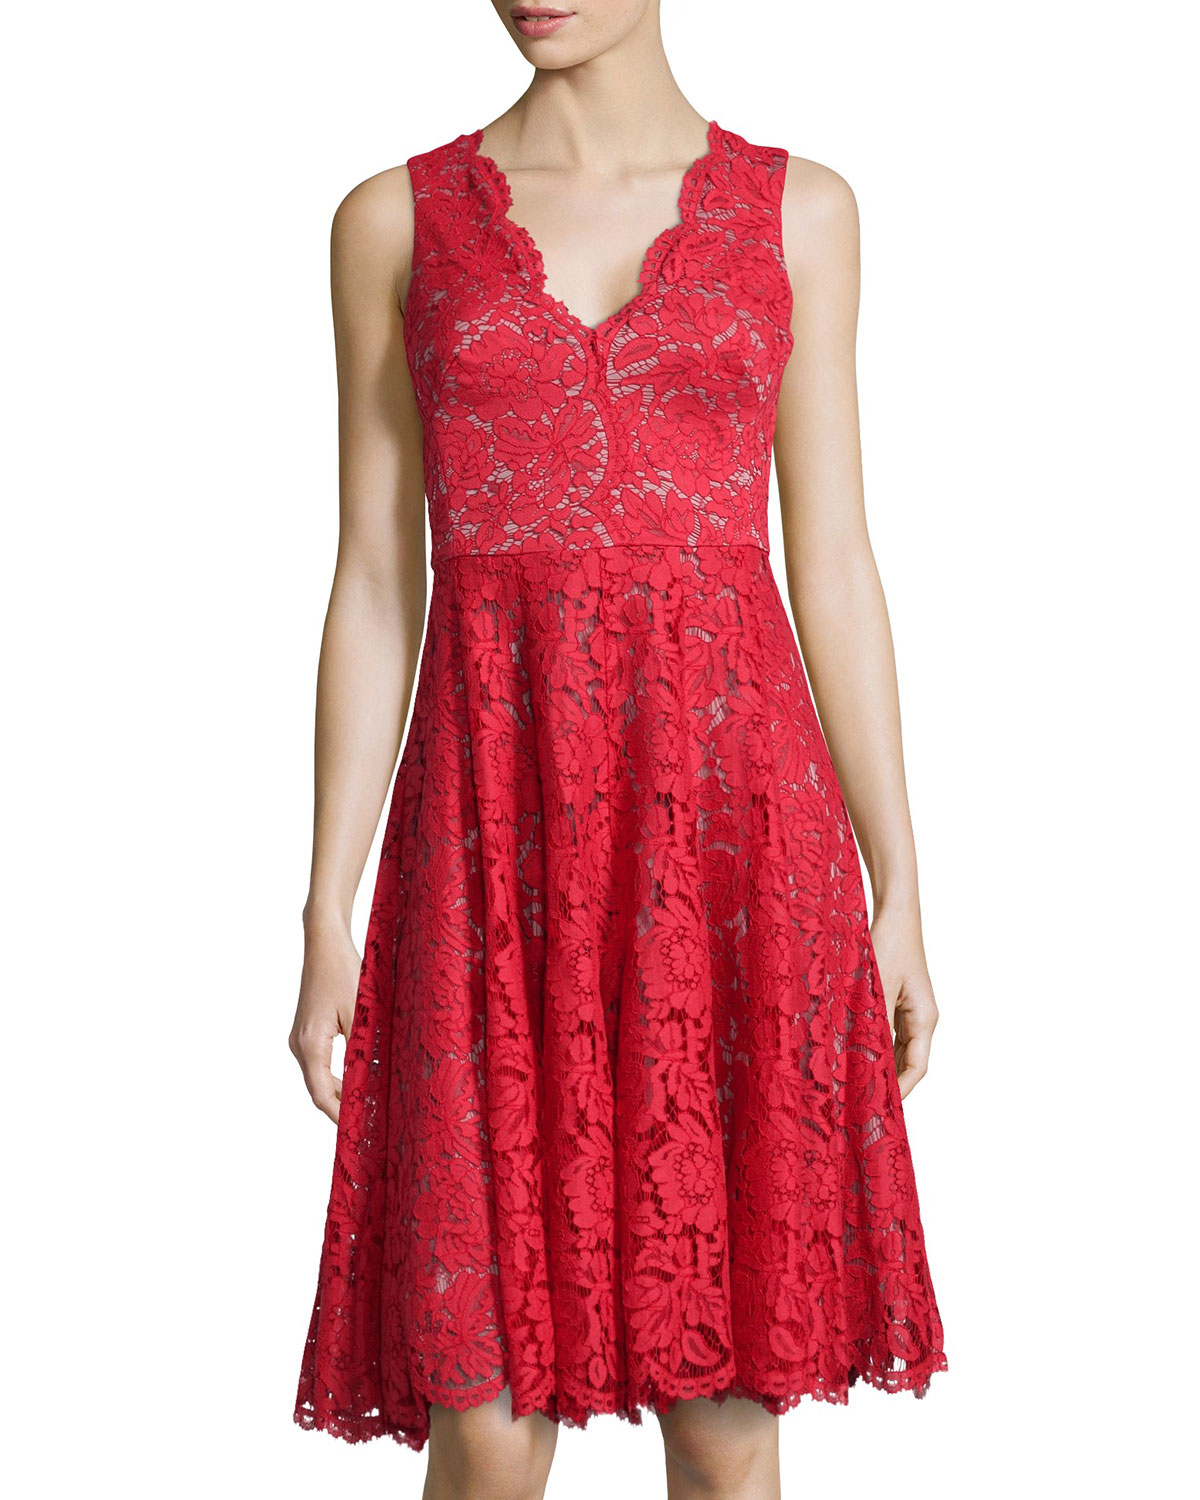 Vera Wang Sleeveless Lace Cocktail Dress In Red Lyst